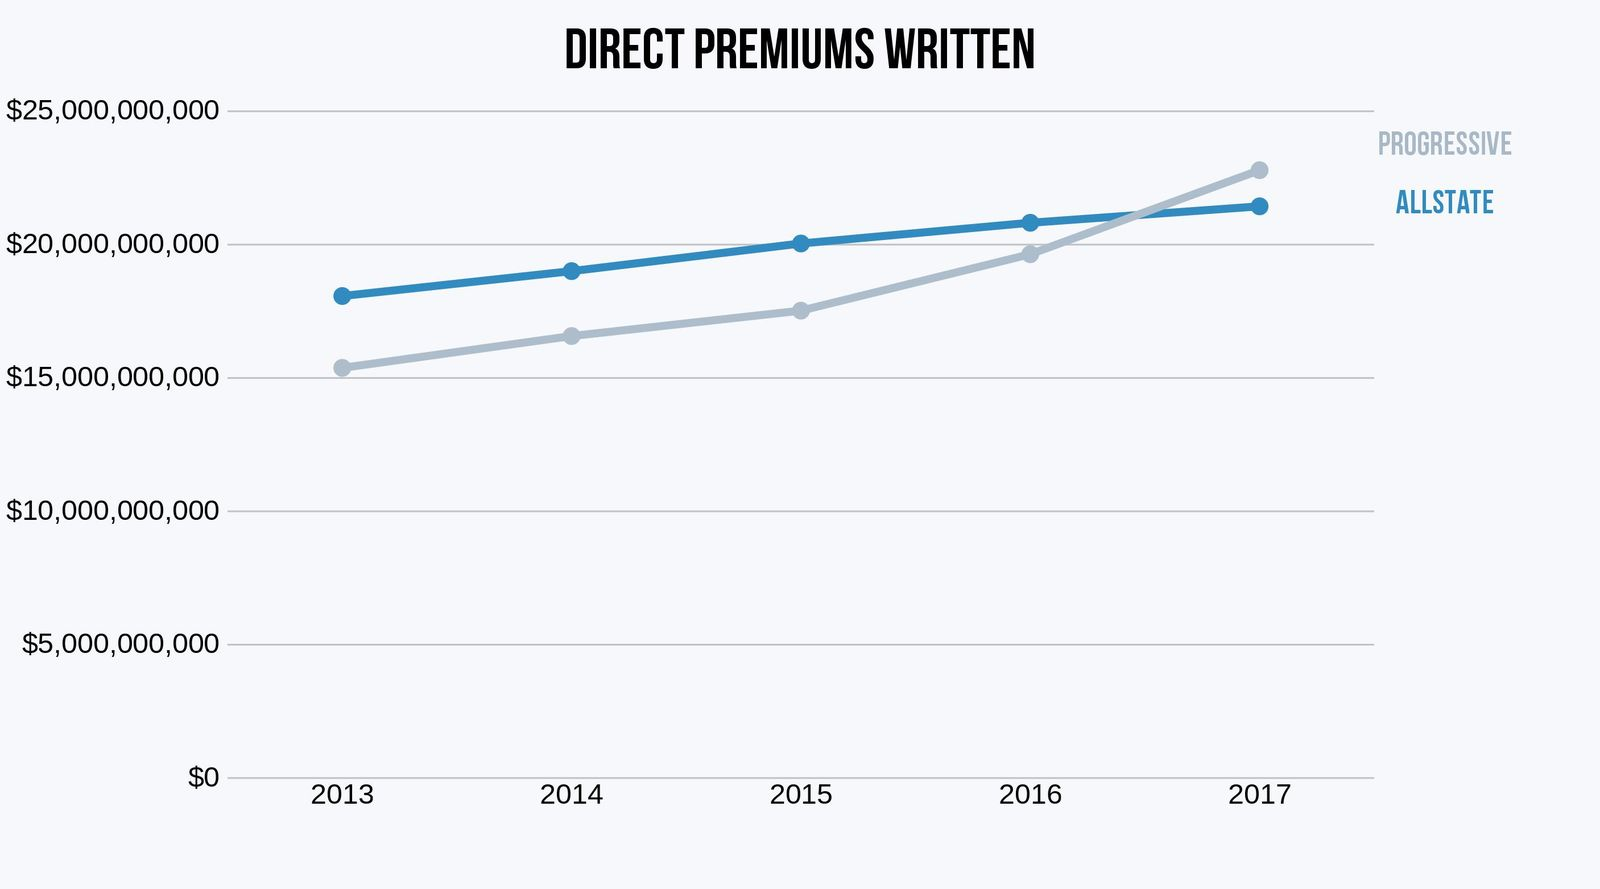 Allstate direct premiums vs progressive